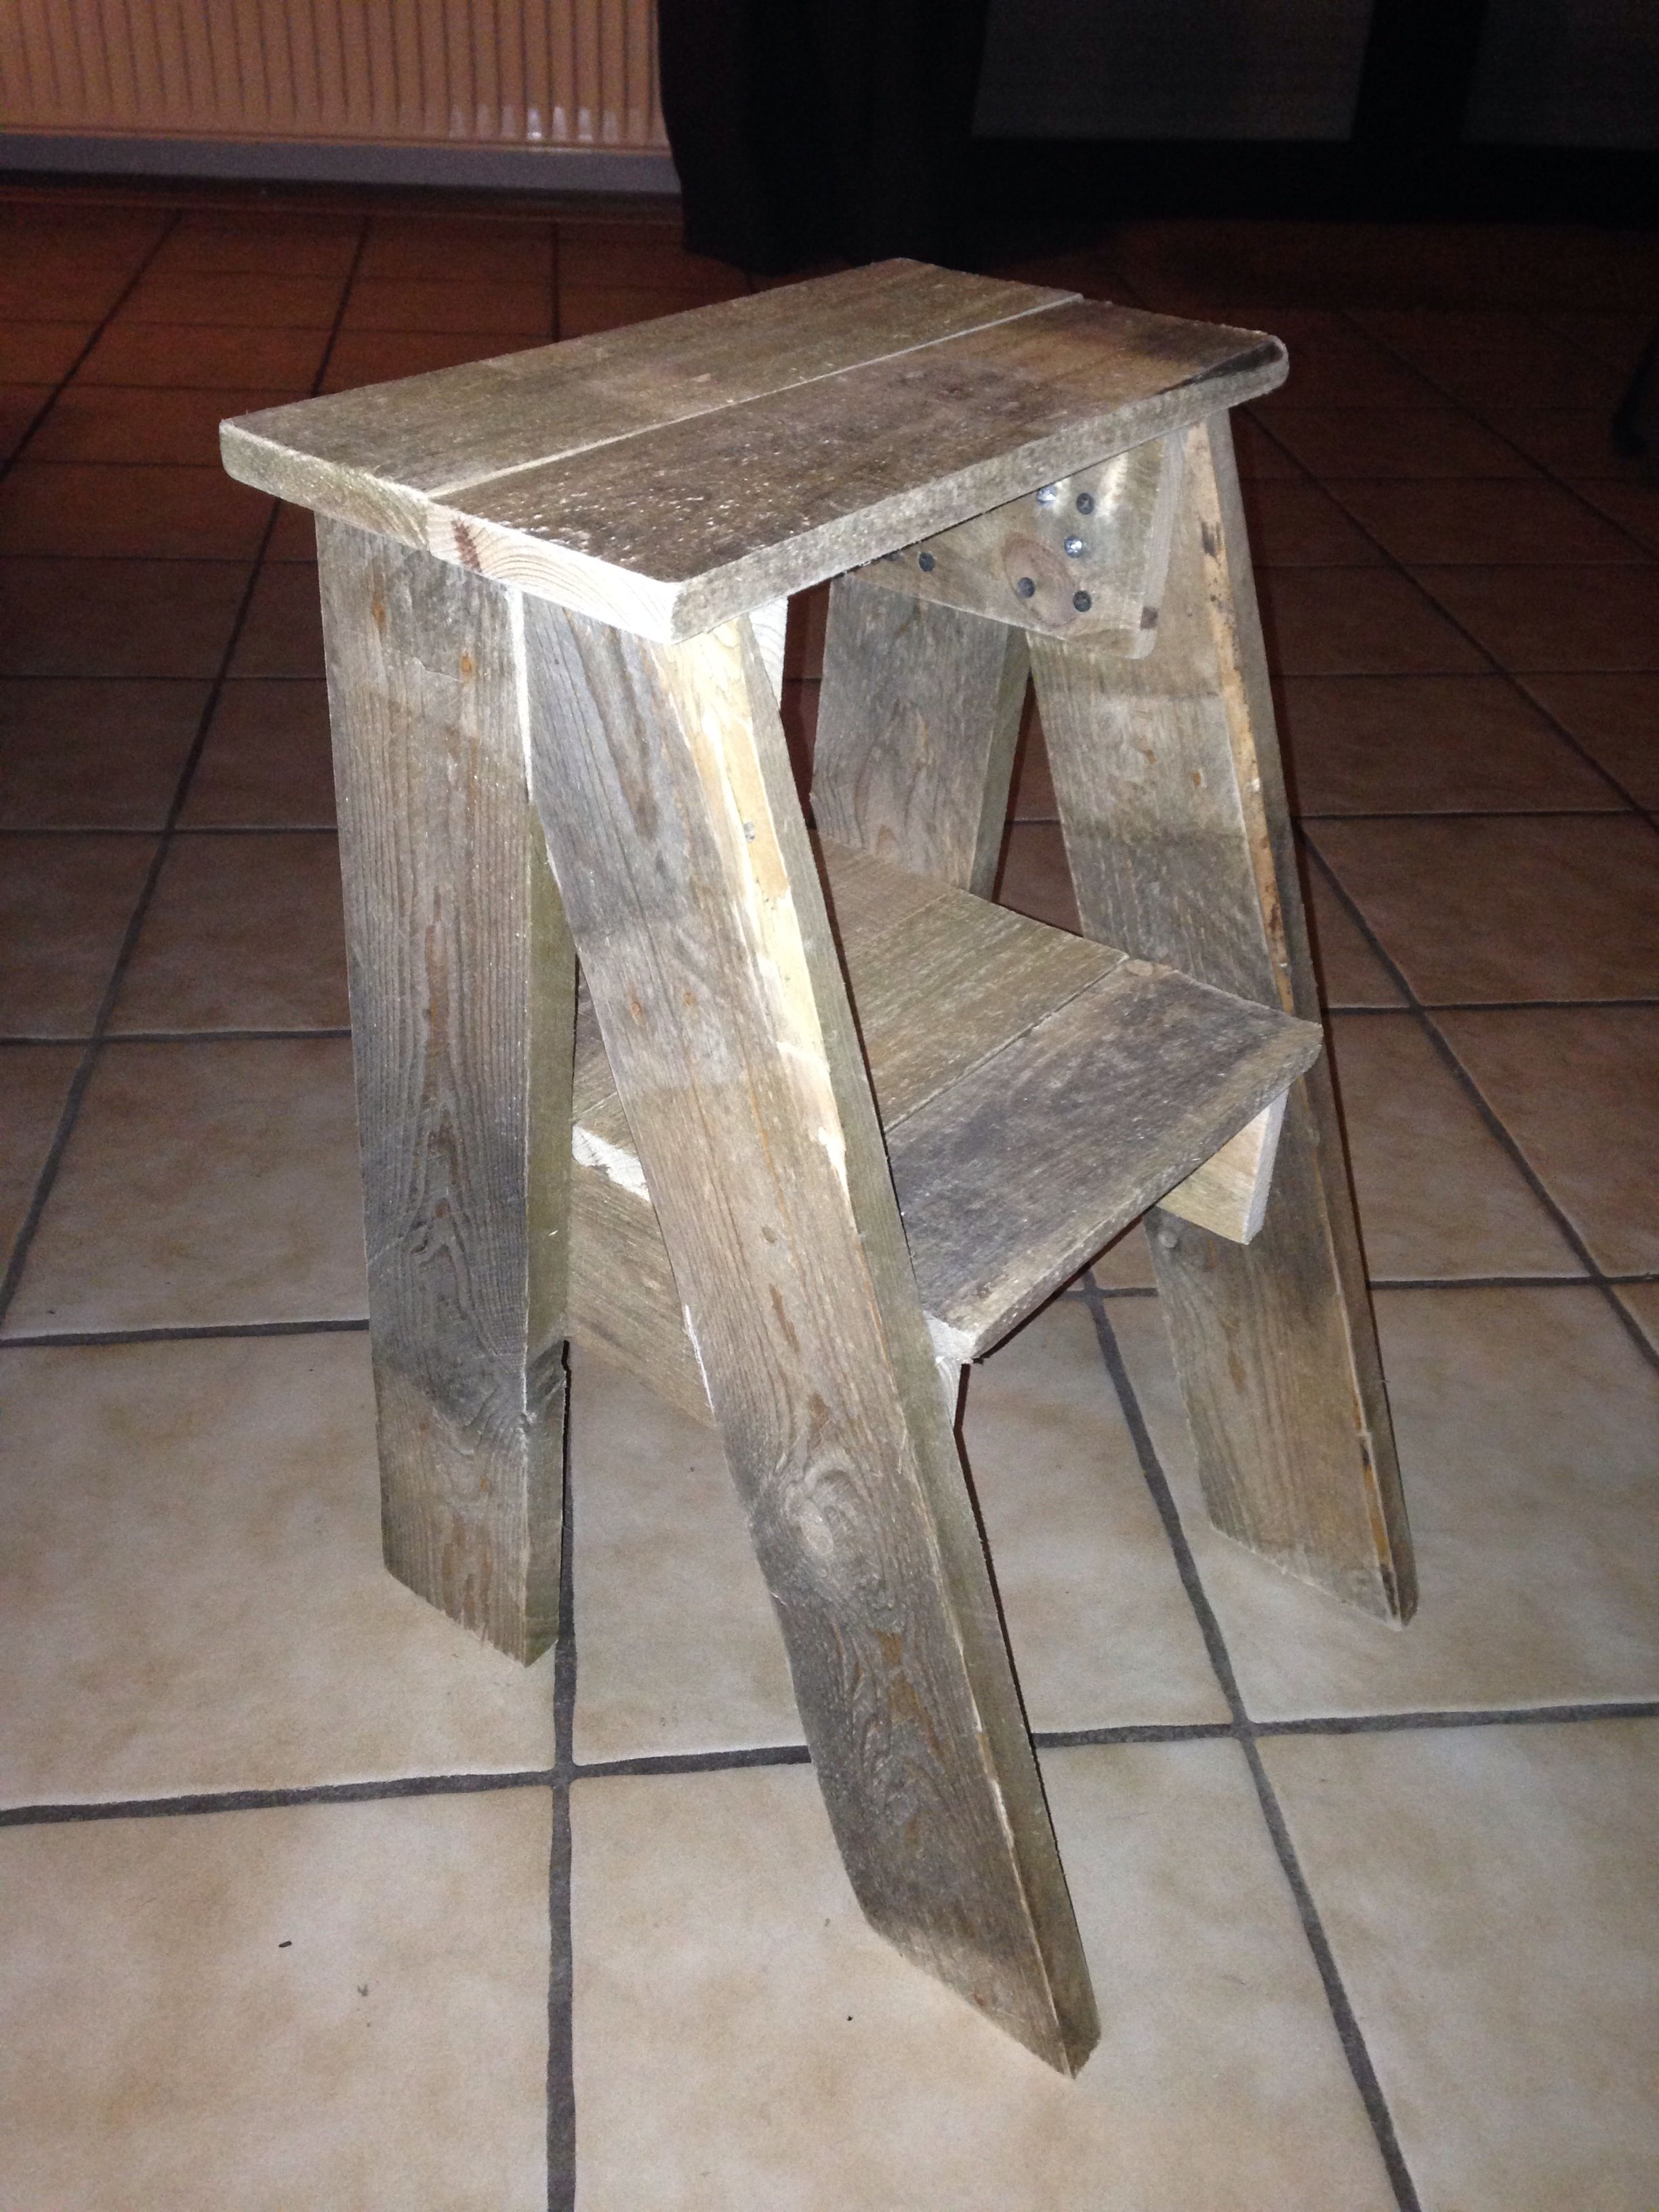 Stool Bedside Table: Step Stool Bedside Table From Pallet Wood. Basically, Ana